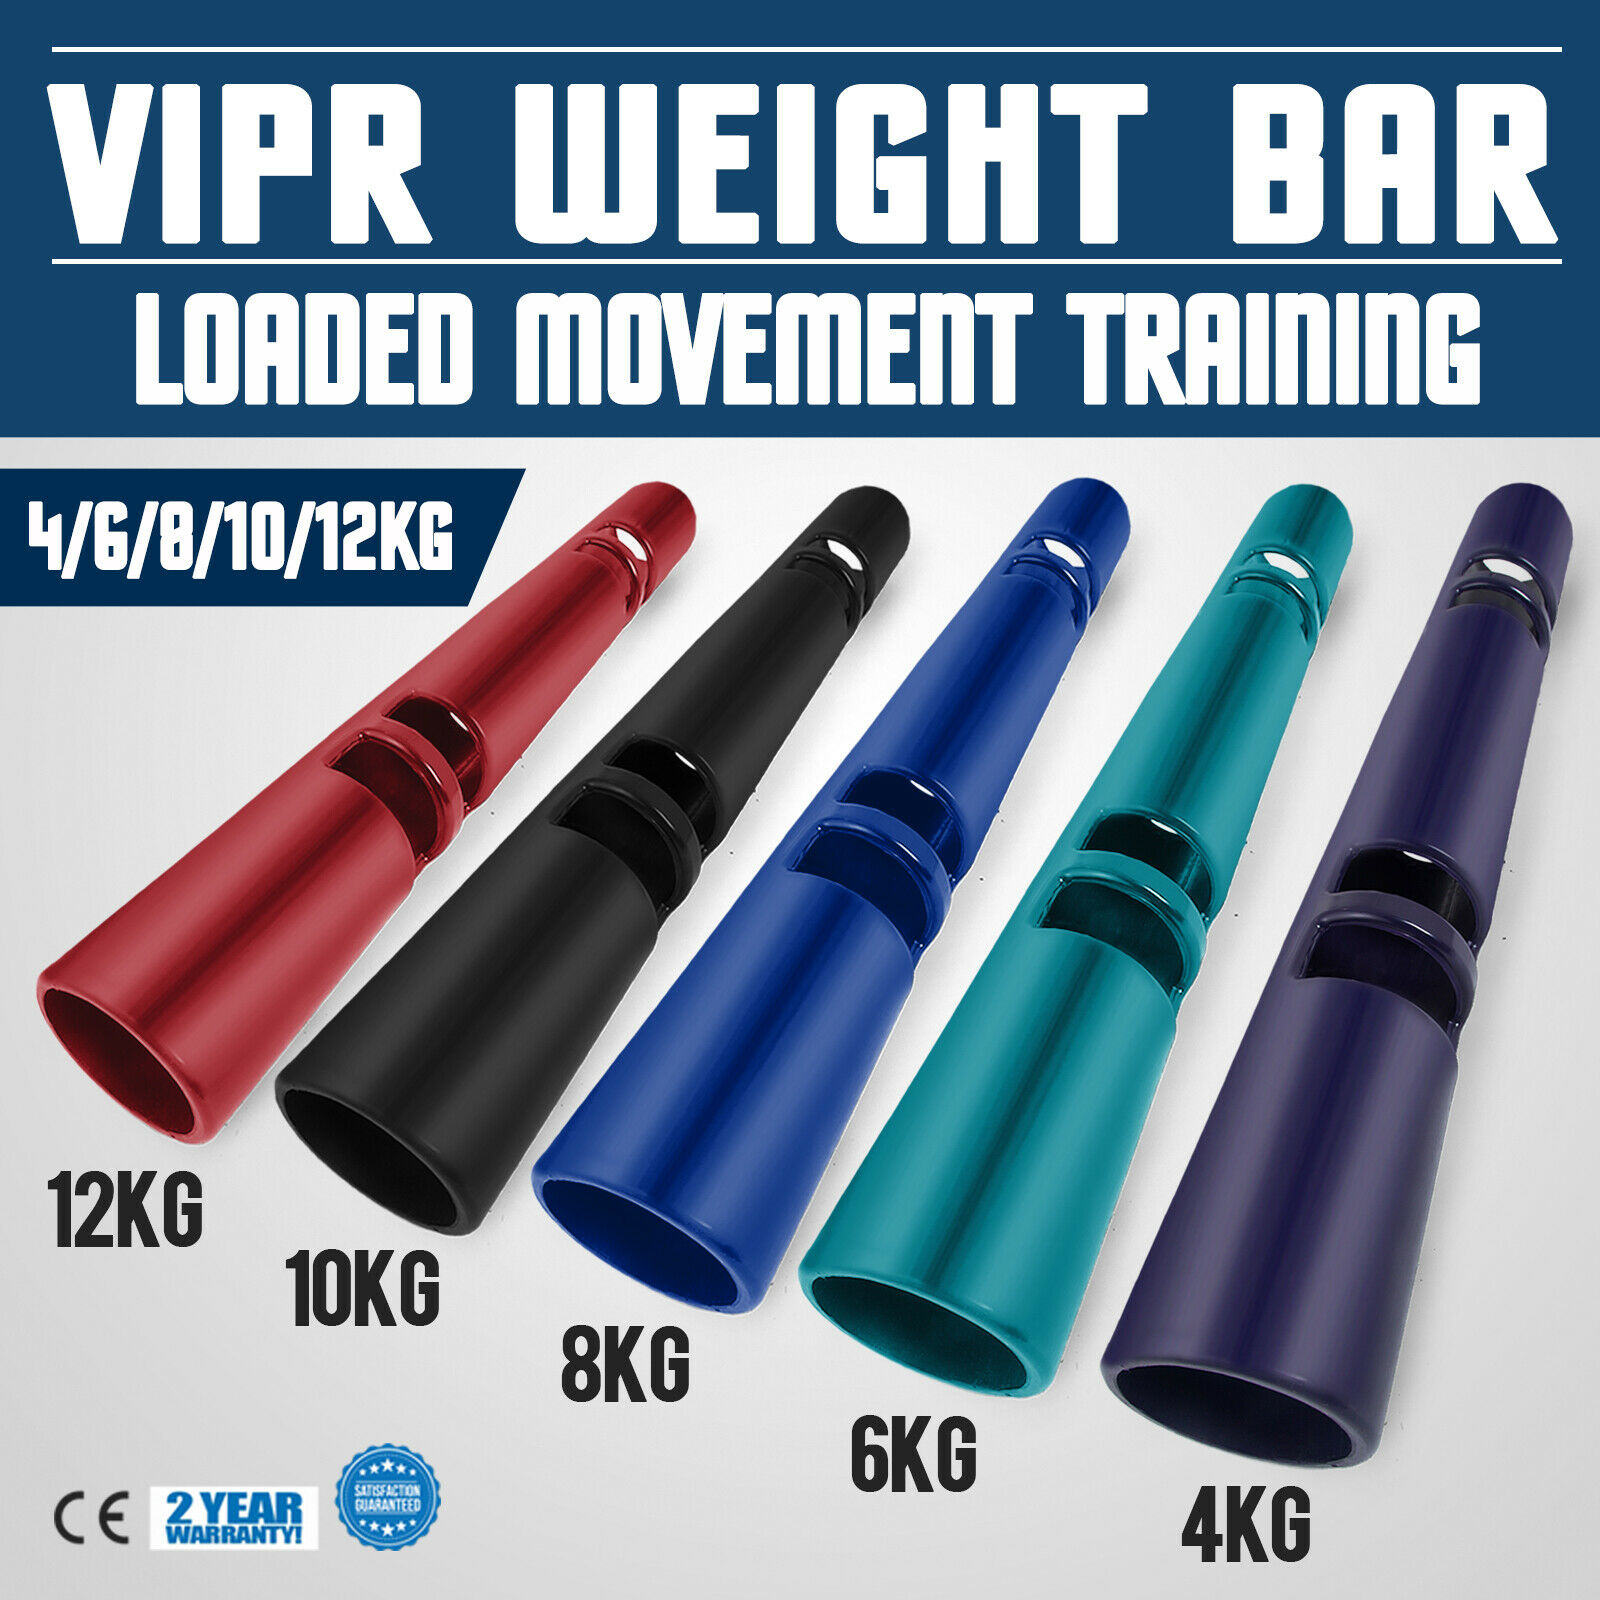 ViPR Fitness  Tube 4 6 8 10 12kg  Viper bluee Rubber Exercise  lowest whole network